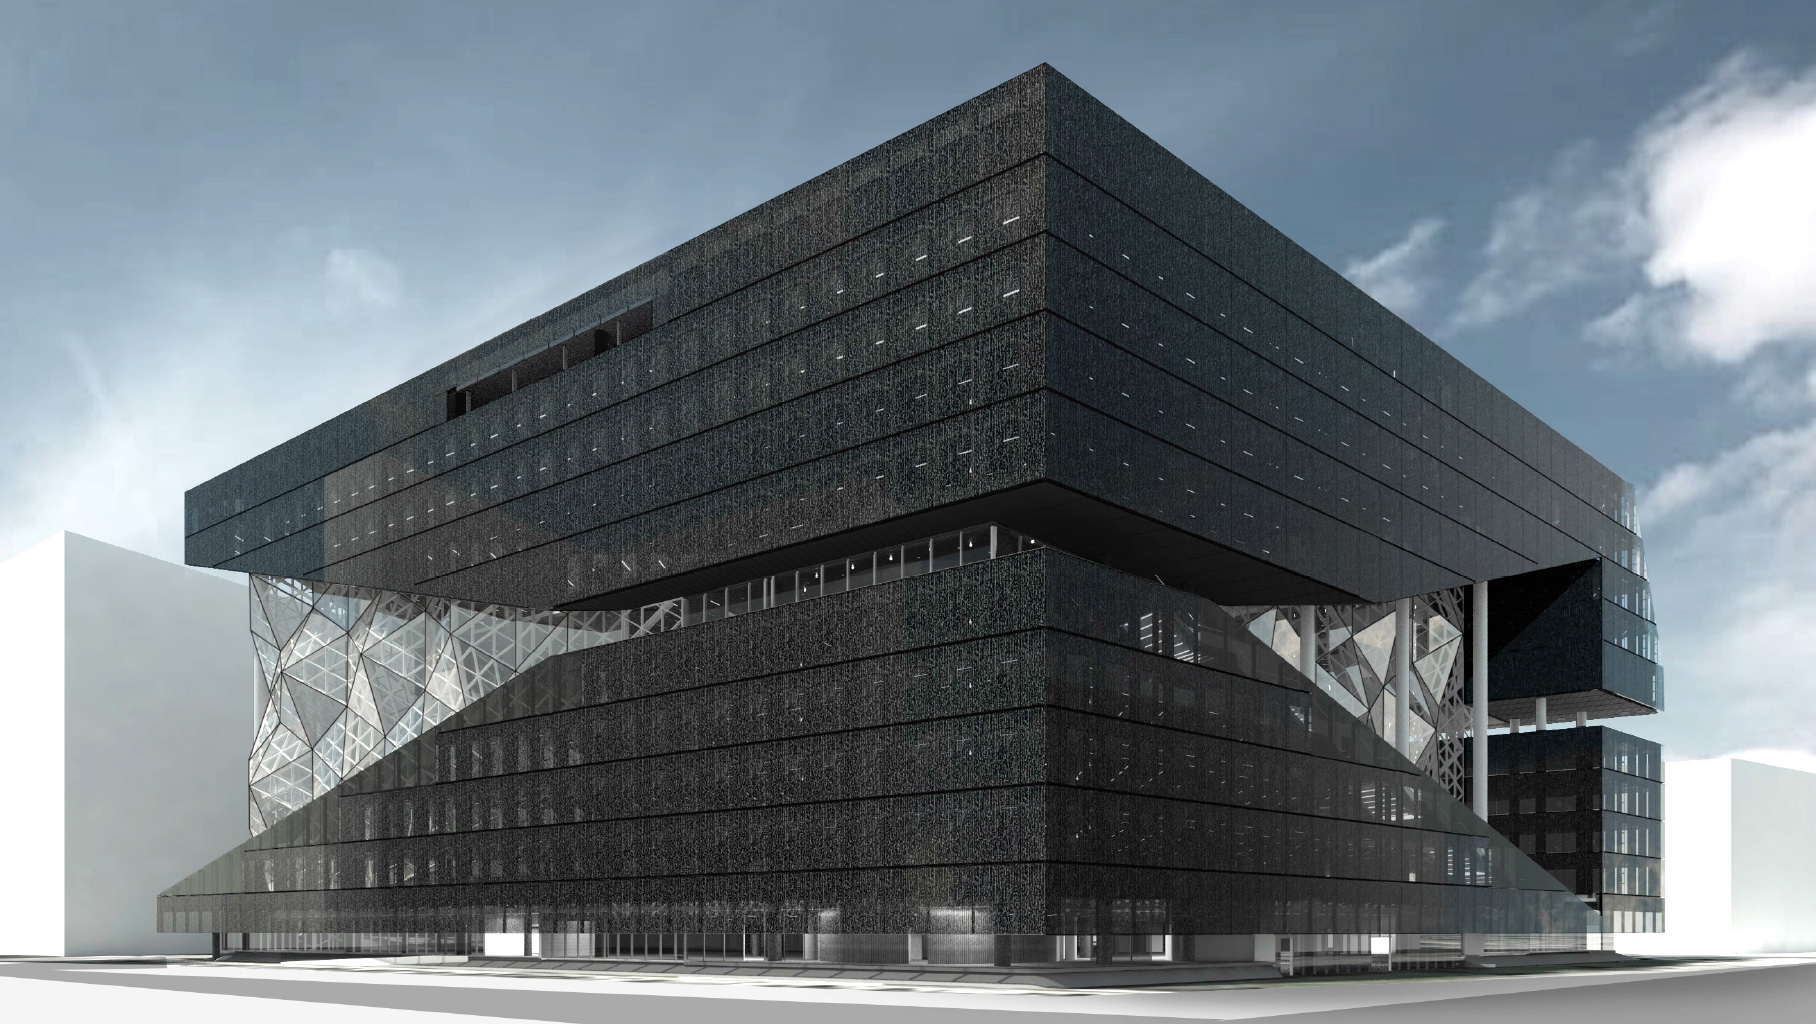 Axel Springer Edificio